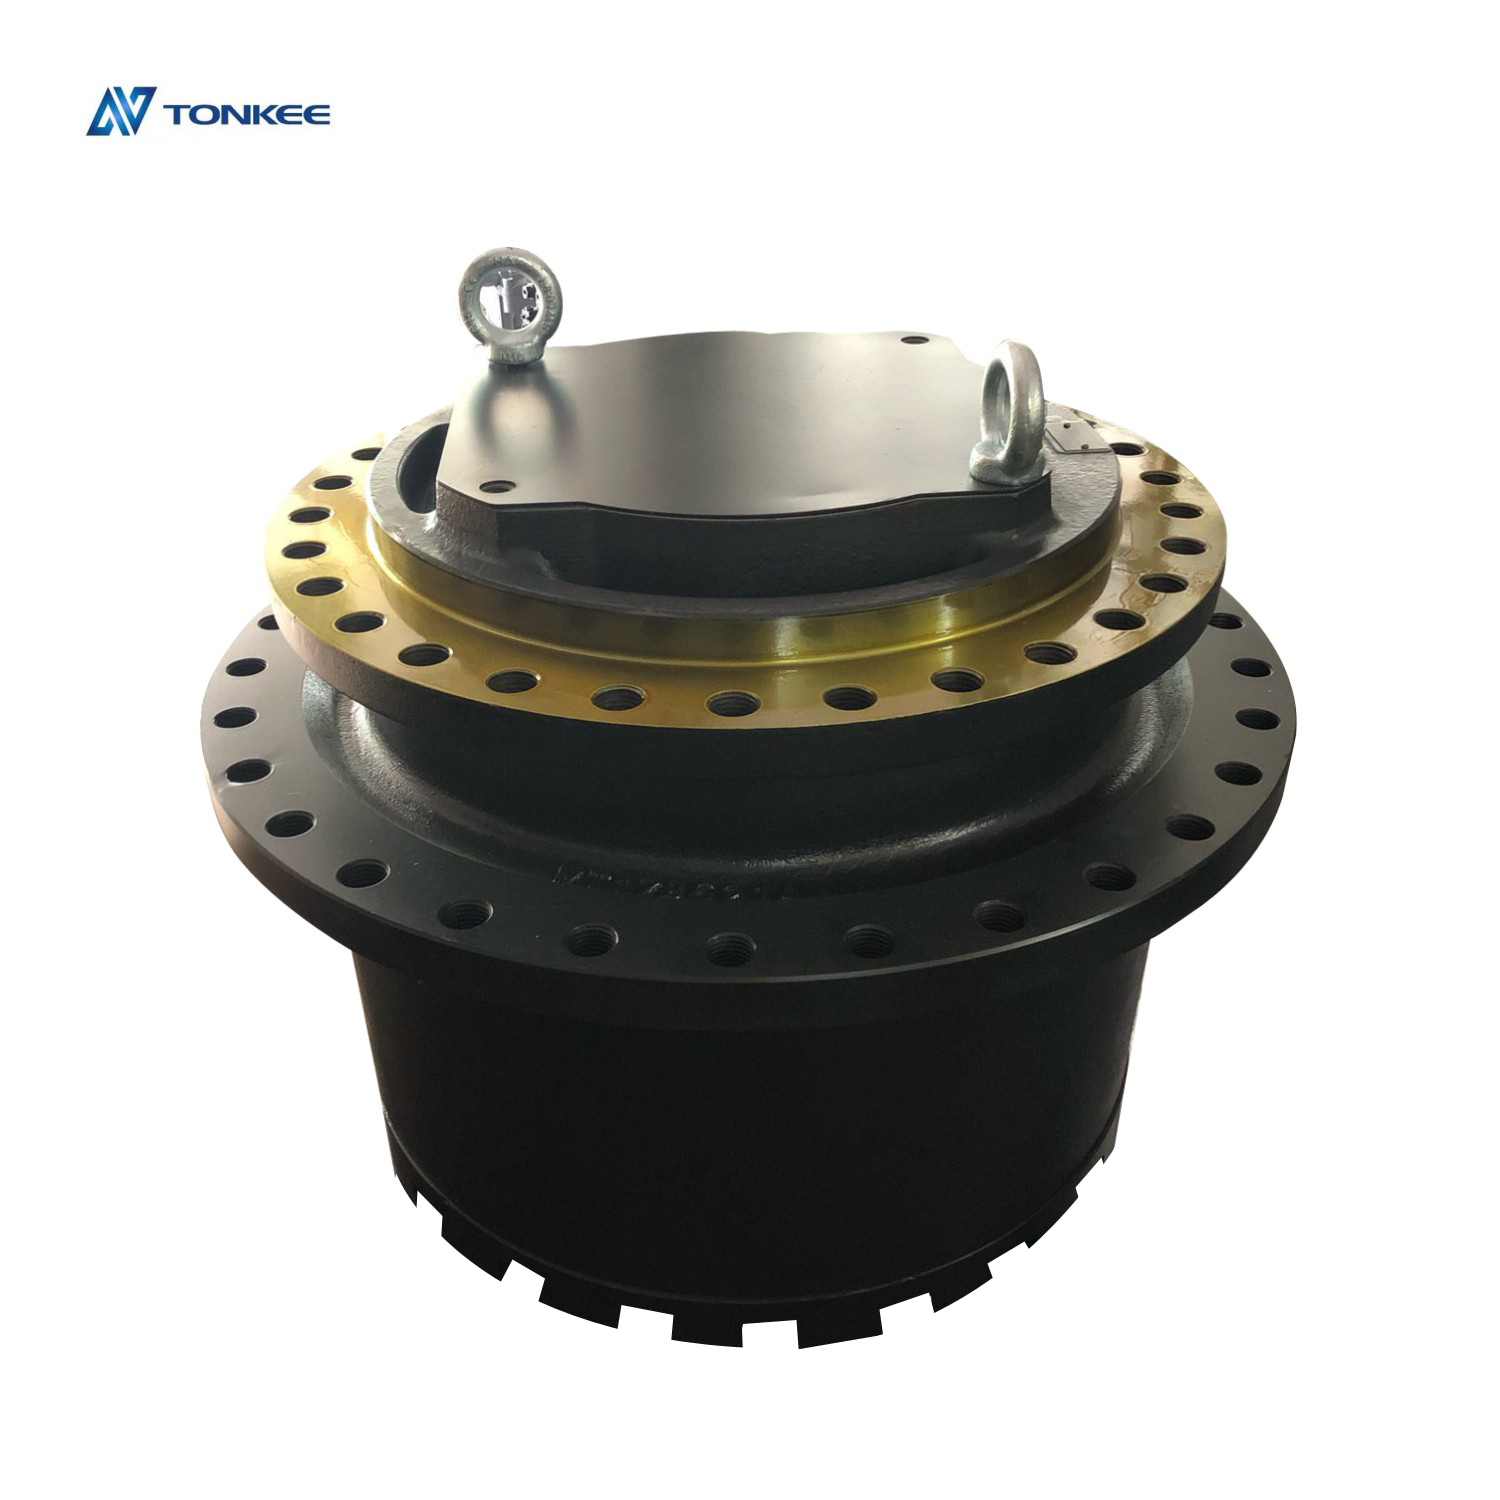 80 ton excavator final drive group WT17BC speed reducer OKUBO gear SK850 PC750 PC800 PC850-8 travel gearbox